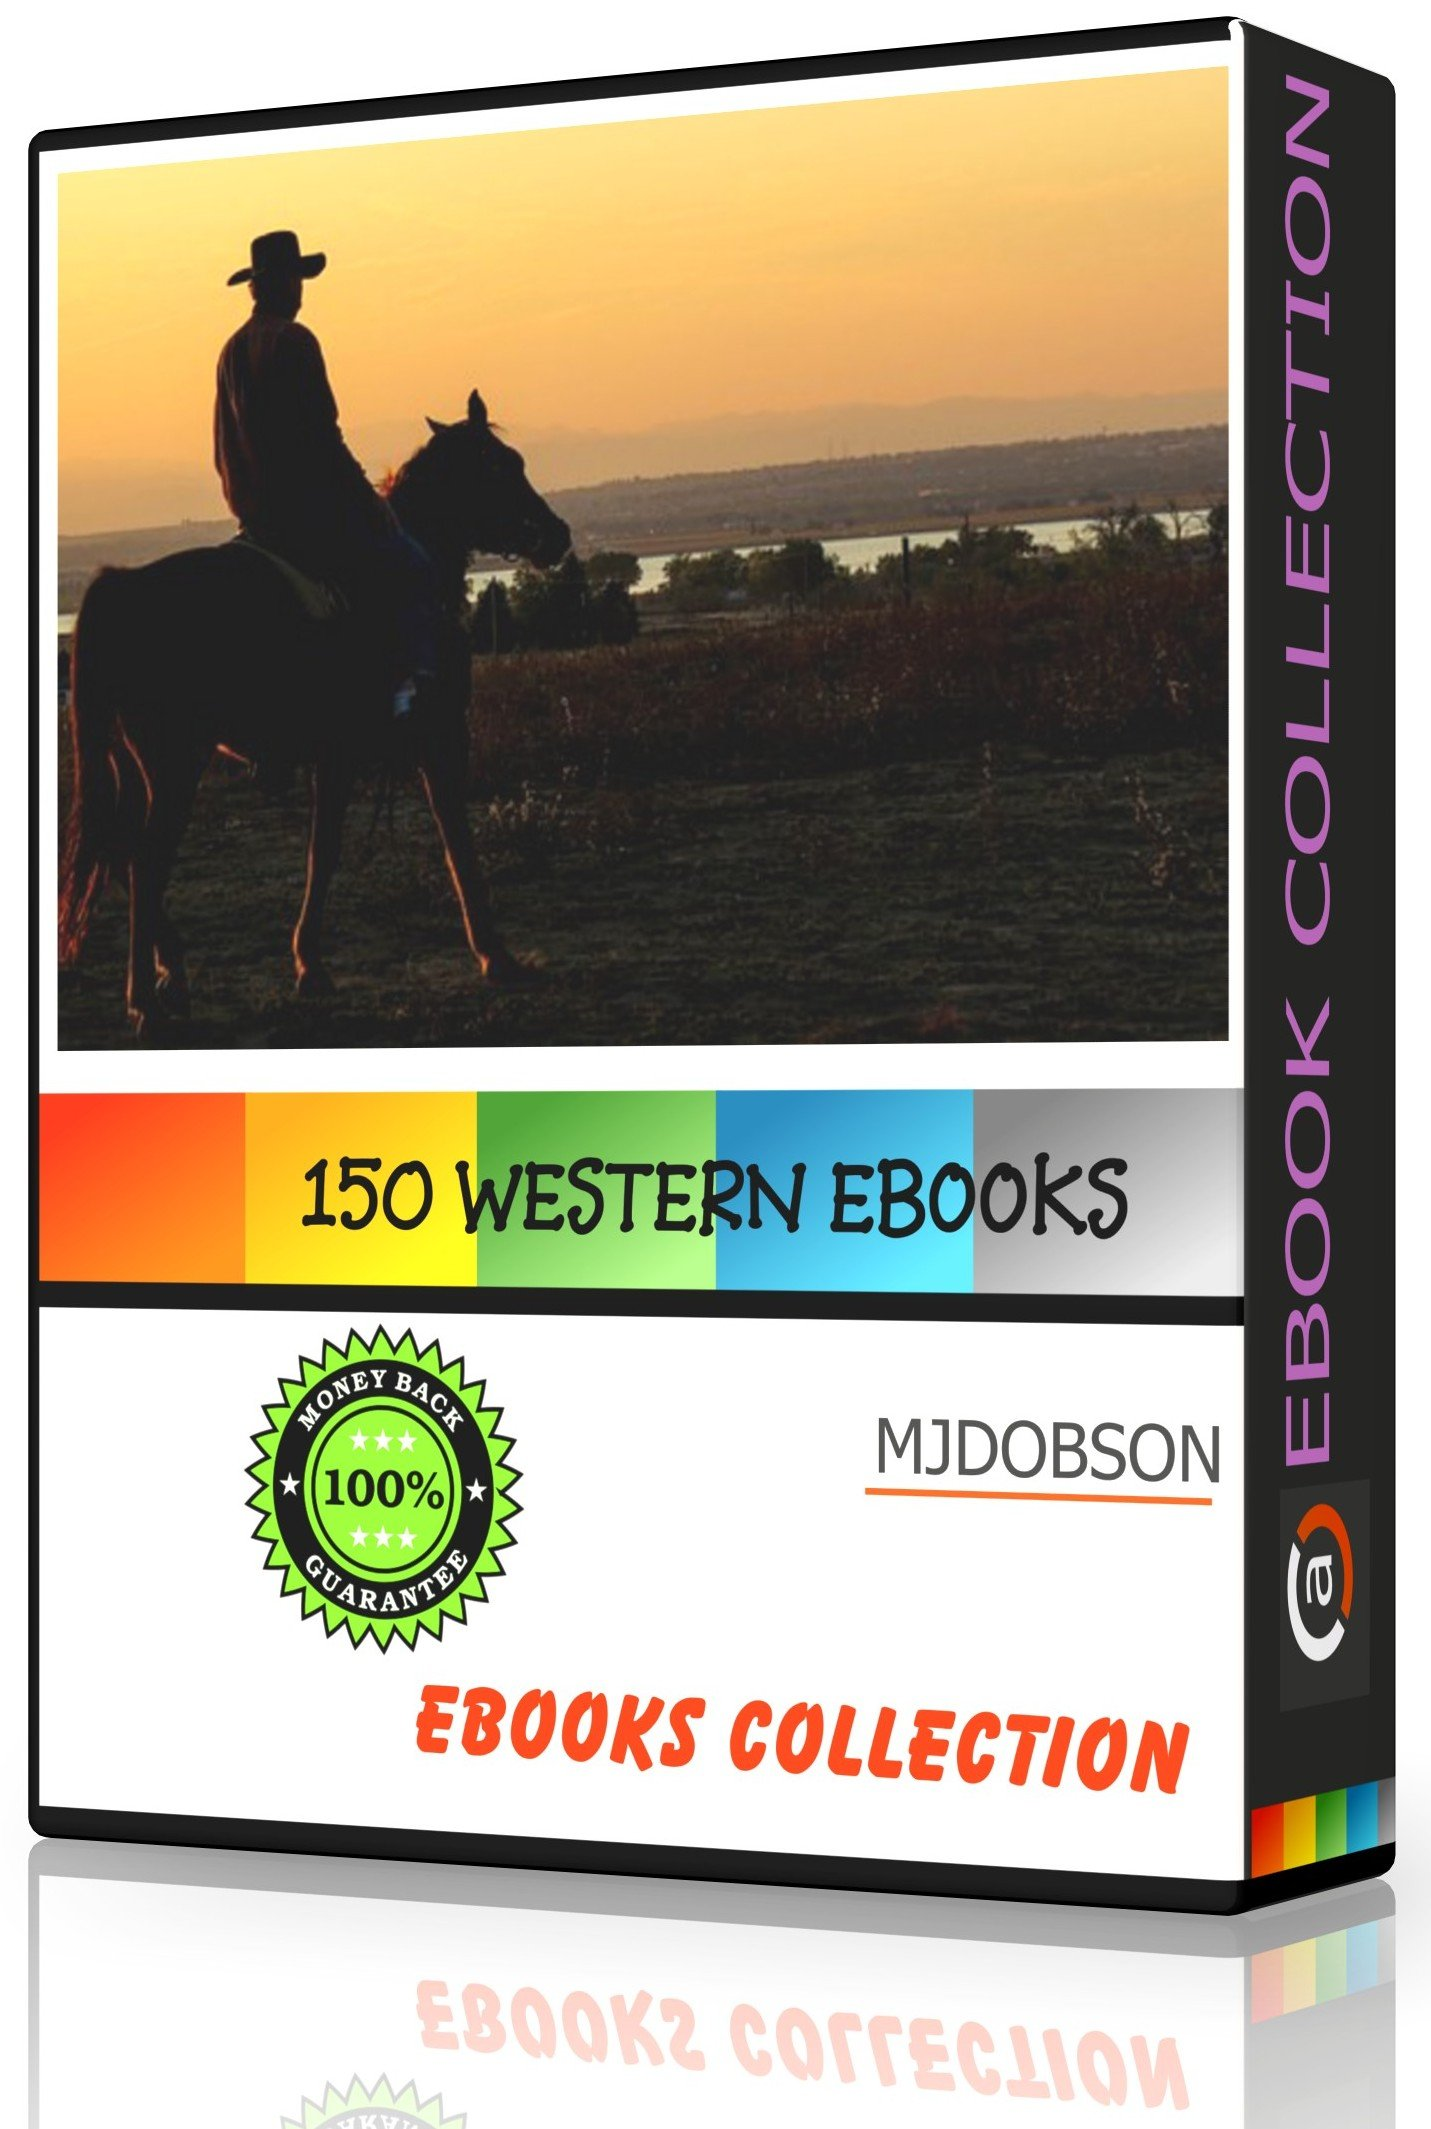 Western Ebooks Stories Story Books Disc For Ipad Kindle Kobo Ereader